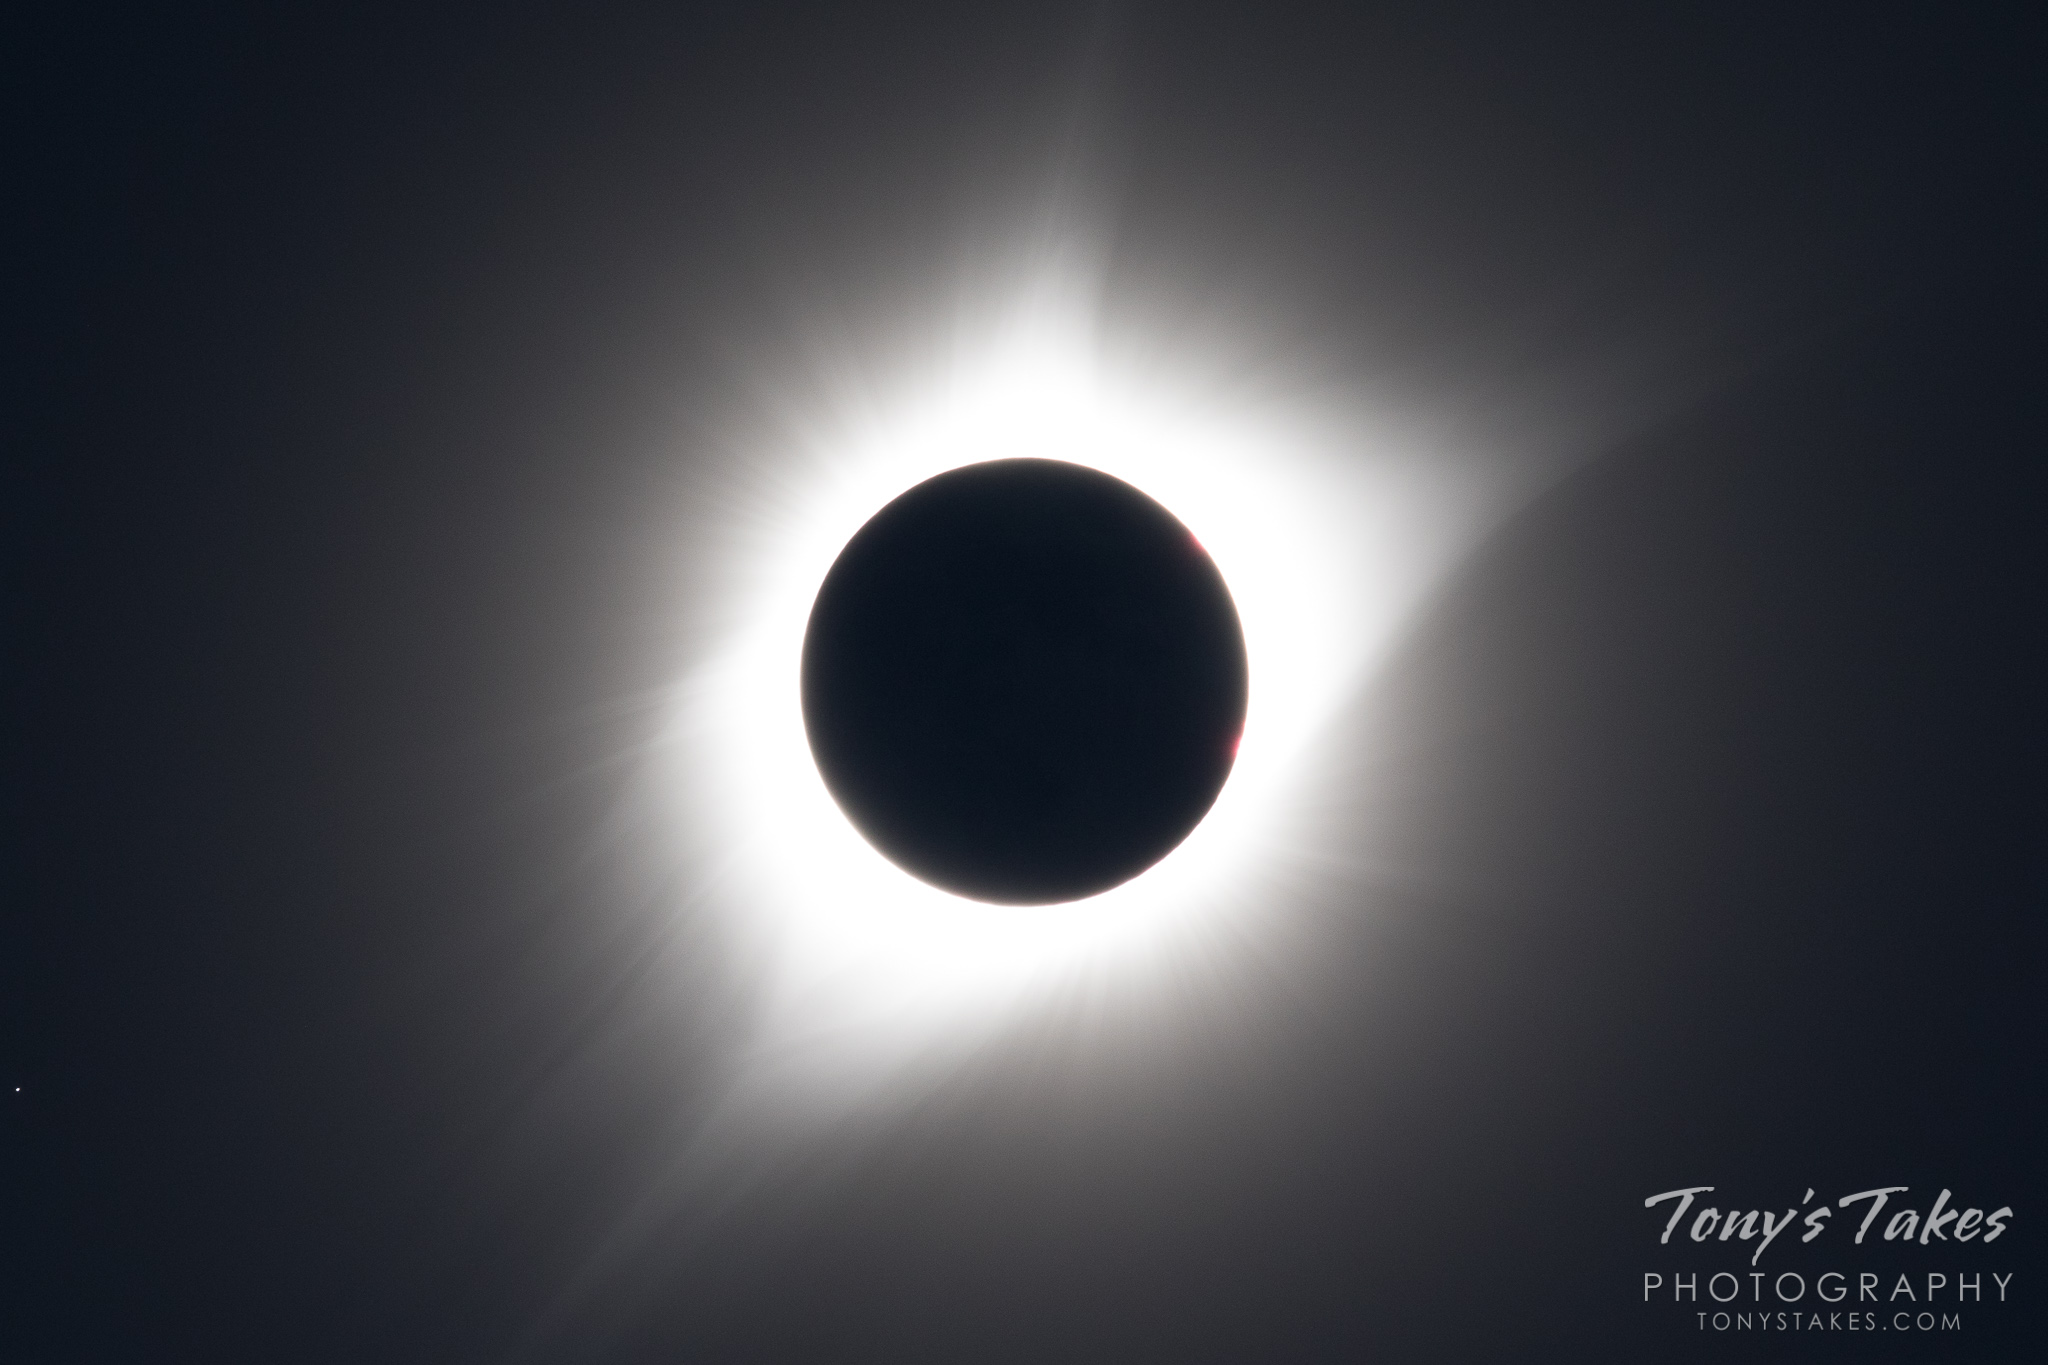 The Great American Eclipse showing the sun's corona. (© Tony's Takes)